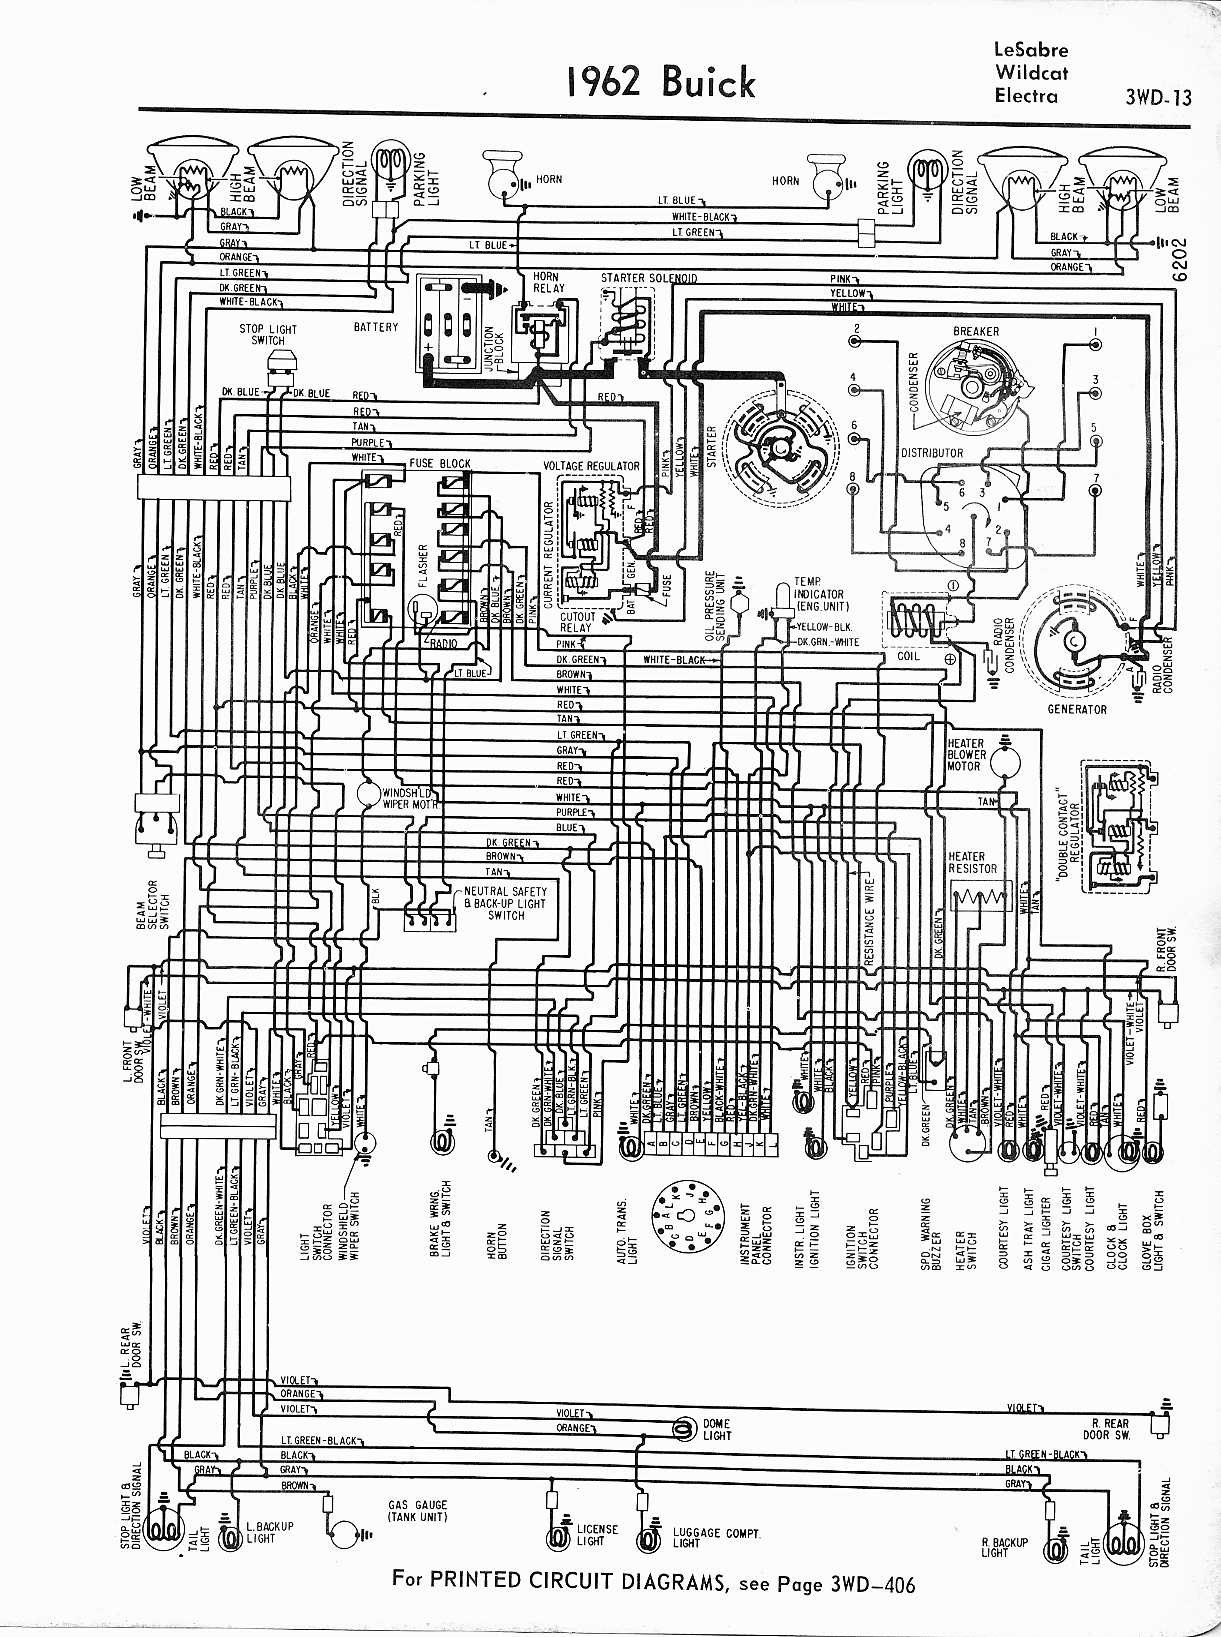 1998 Buick Lesabre Wiring Diagram Pictures